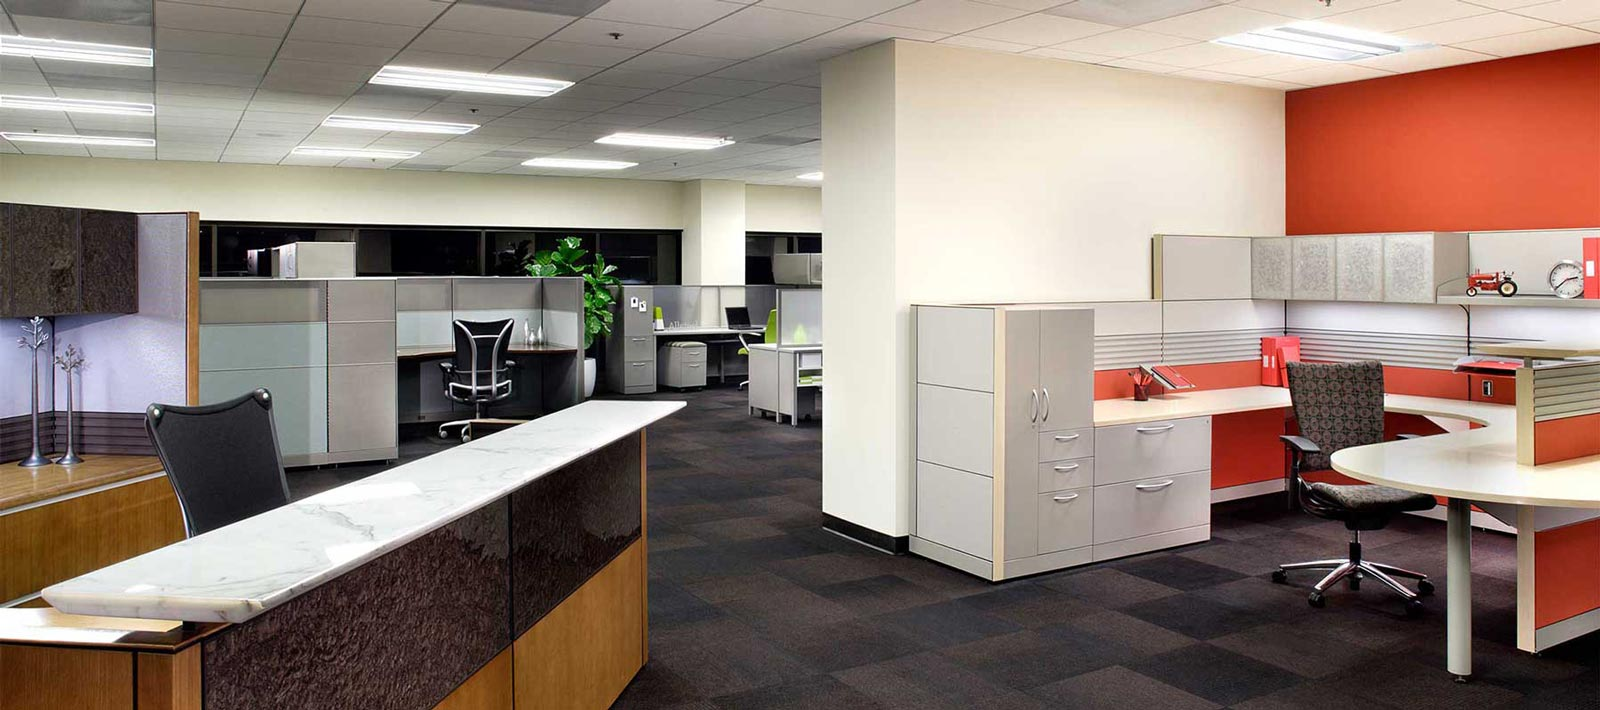 FEQ_corporate business interiors